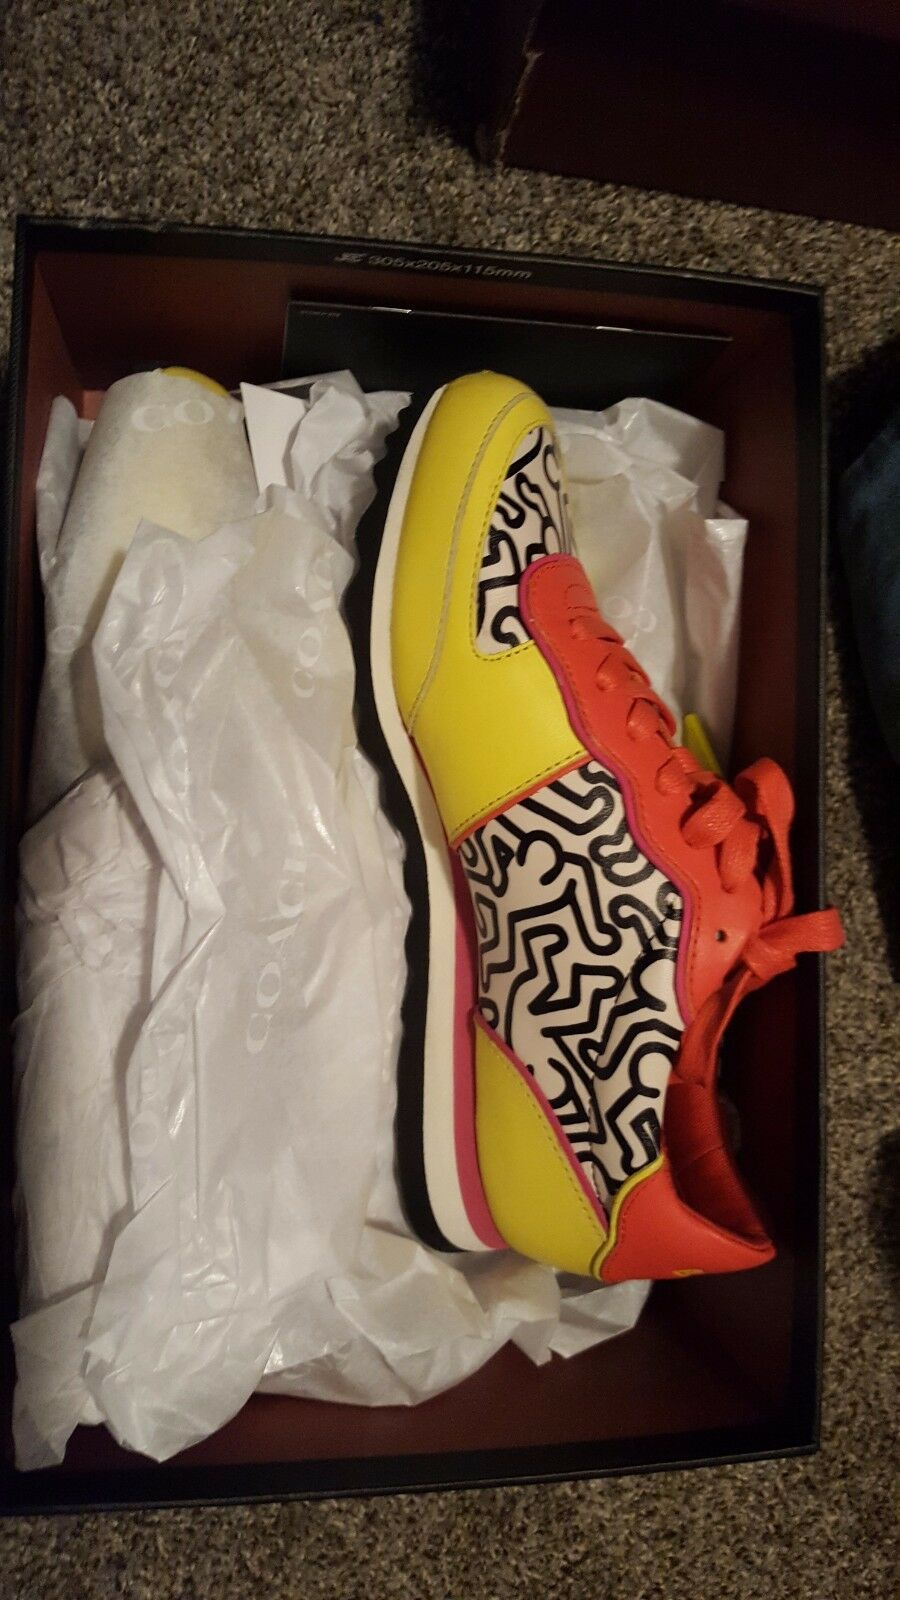 COACH x KEITH HARING Limited Edition Sneakers Yellow Bright Orange 7.5 New